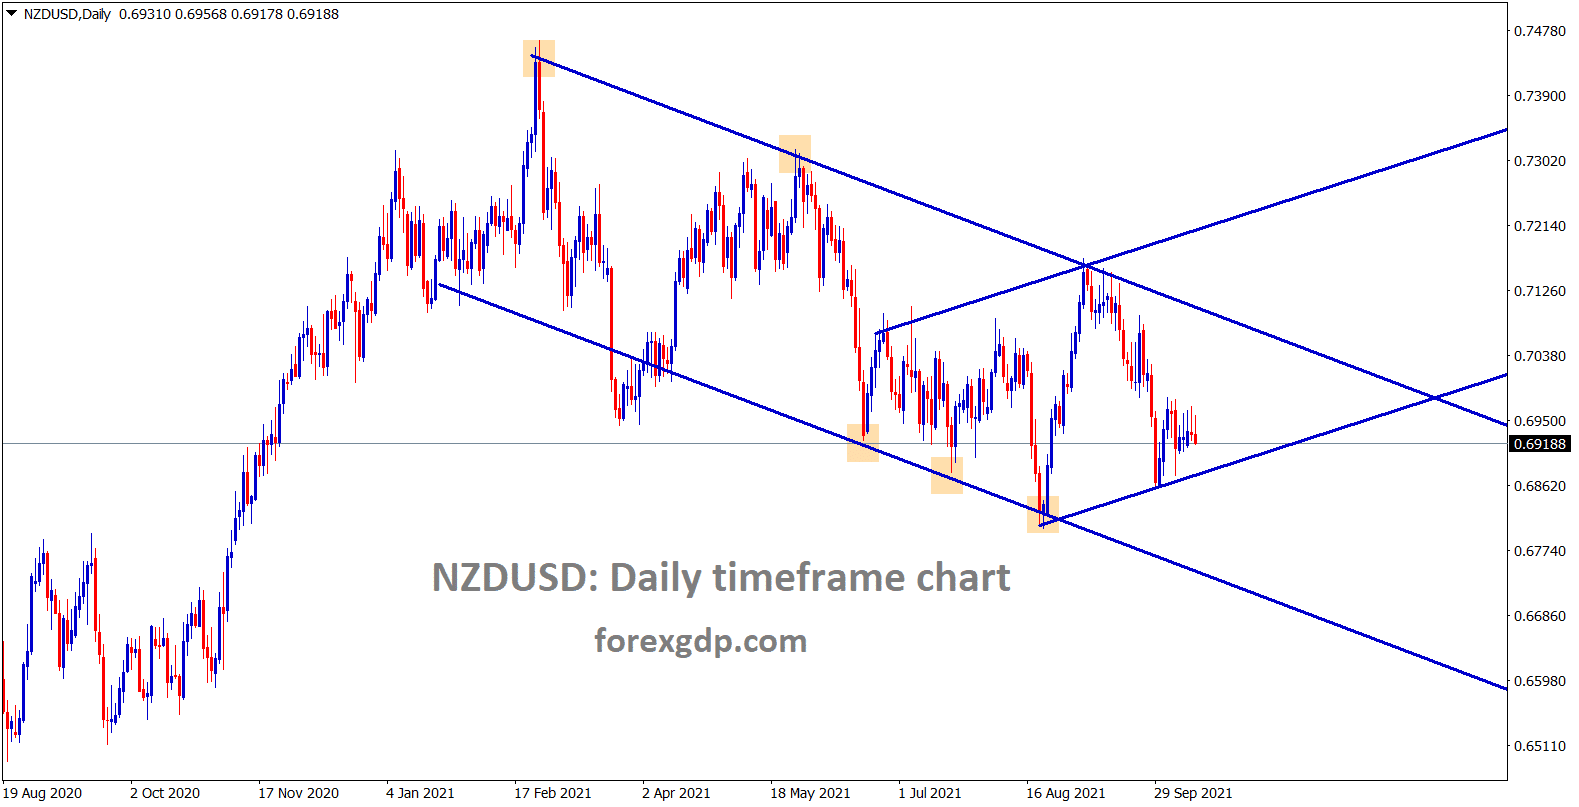 NZDUSD is consolidating at the smaller price range